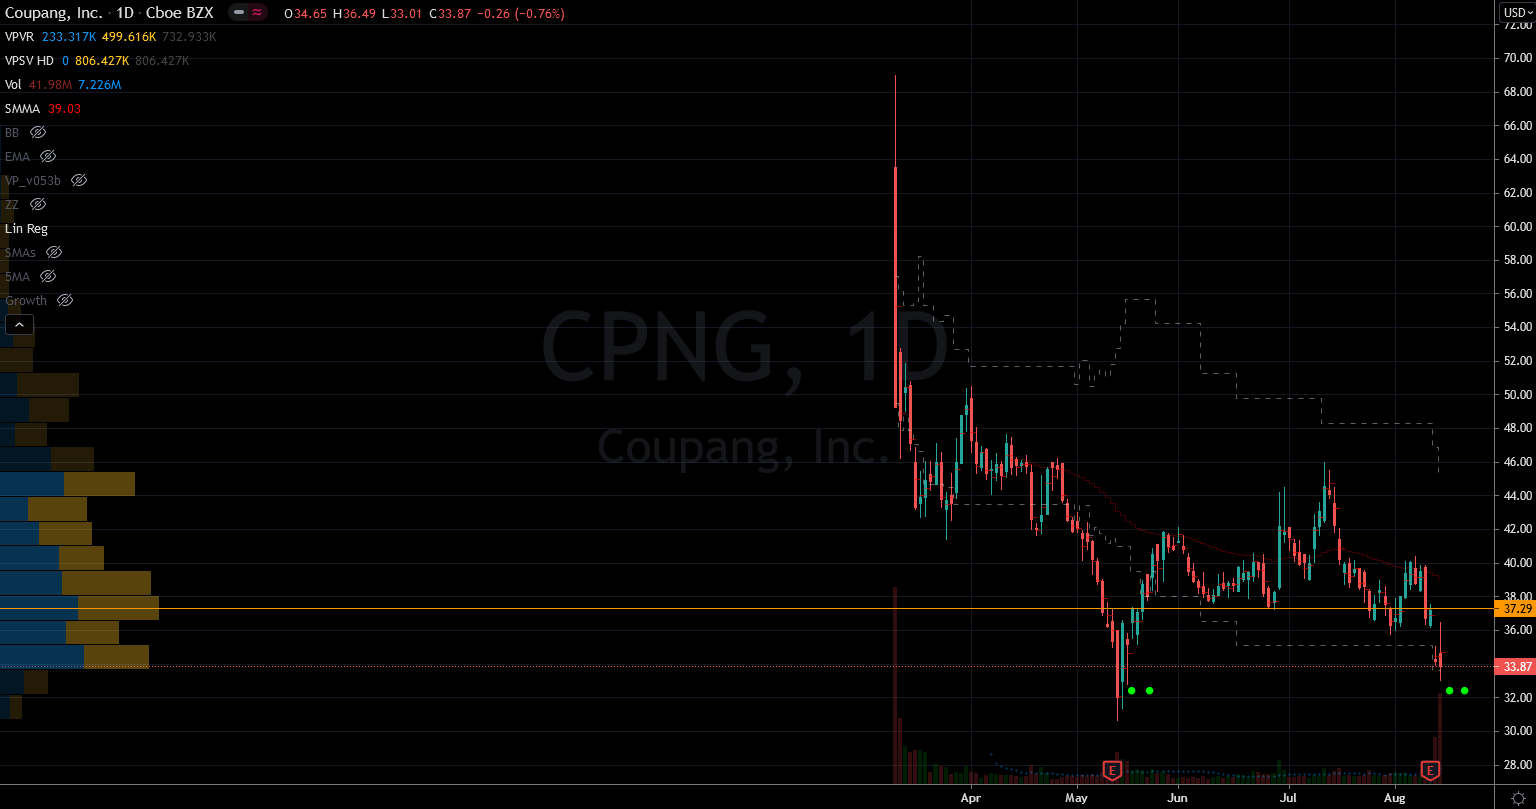 Stocks to Buy: Coupang (CPNG) Stock Chart Showing Potential Base